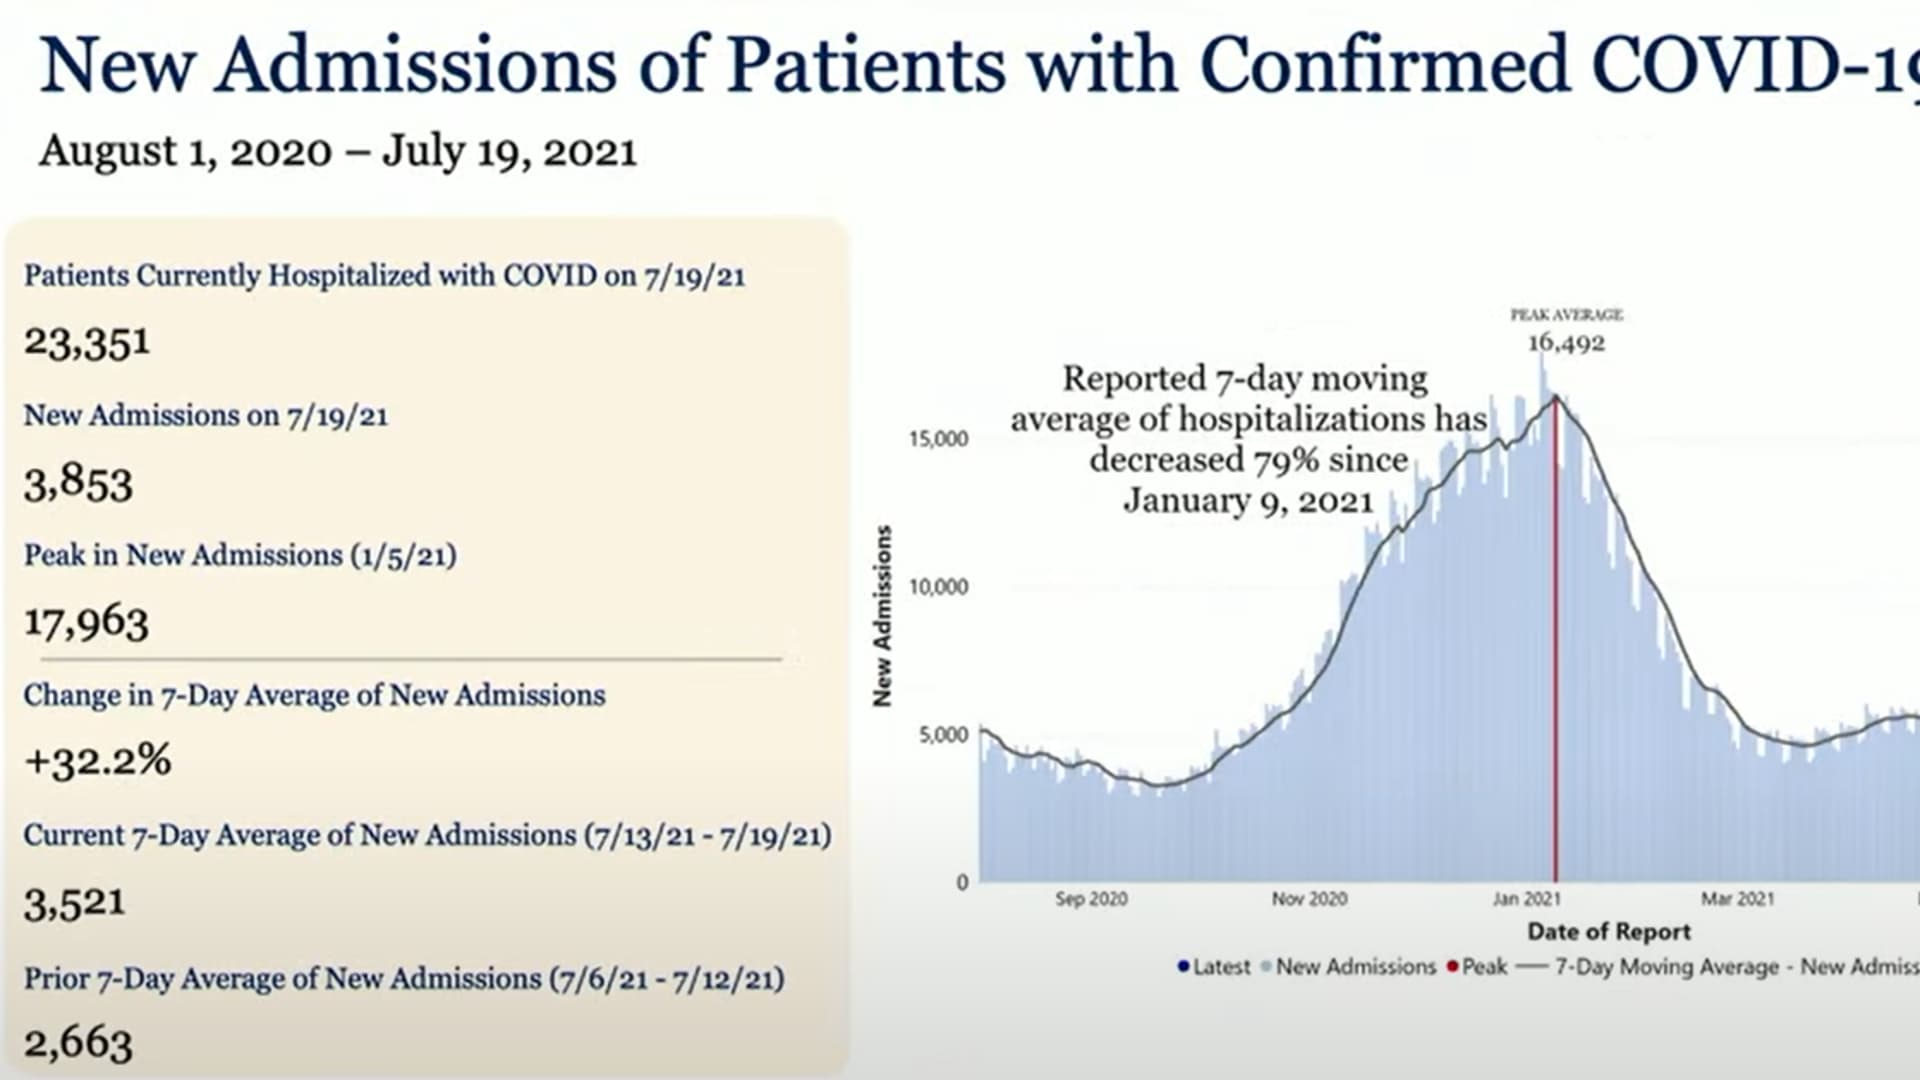 Chart shows current data on Covid-19 in the United States.